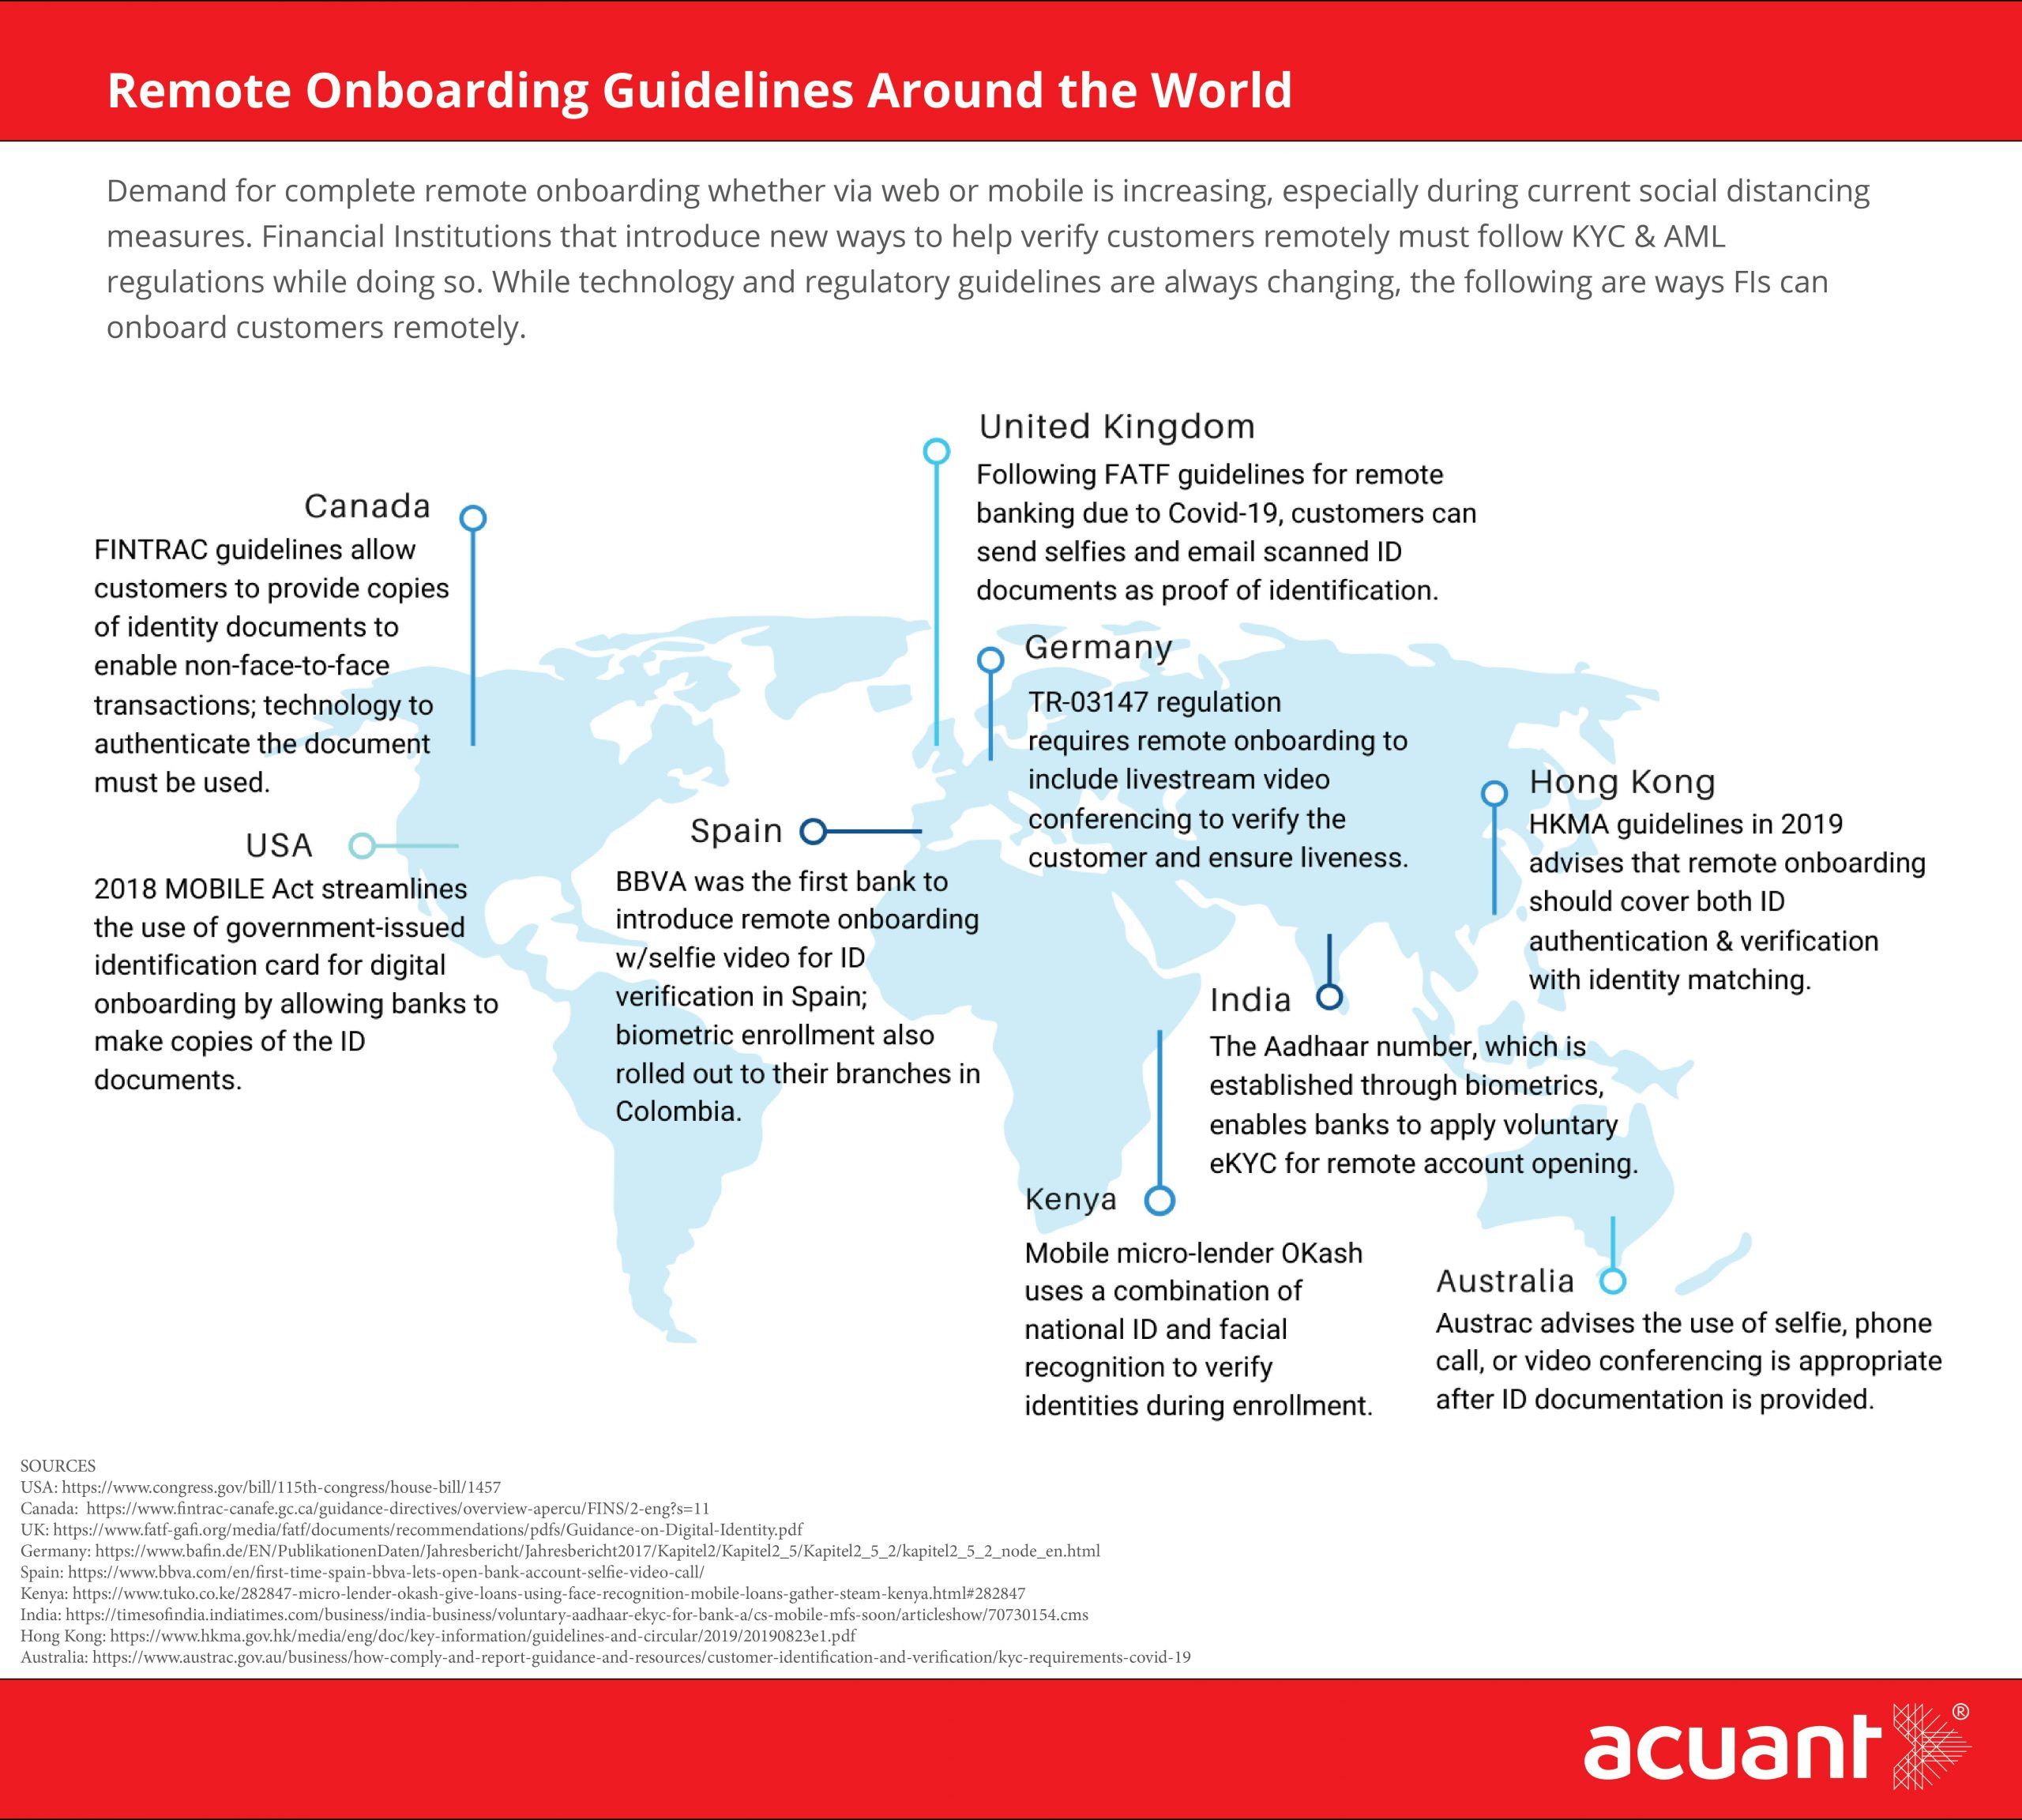 Remote Onboarding Around the World Infographic